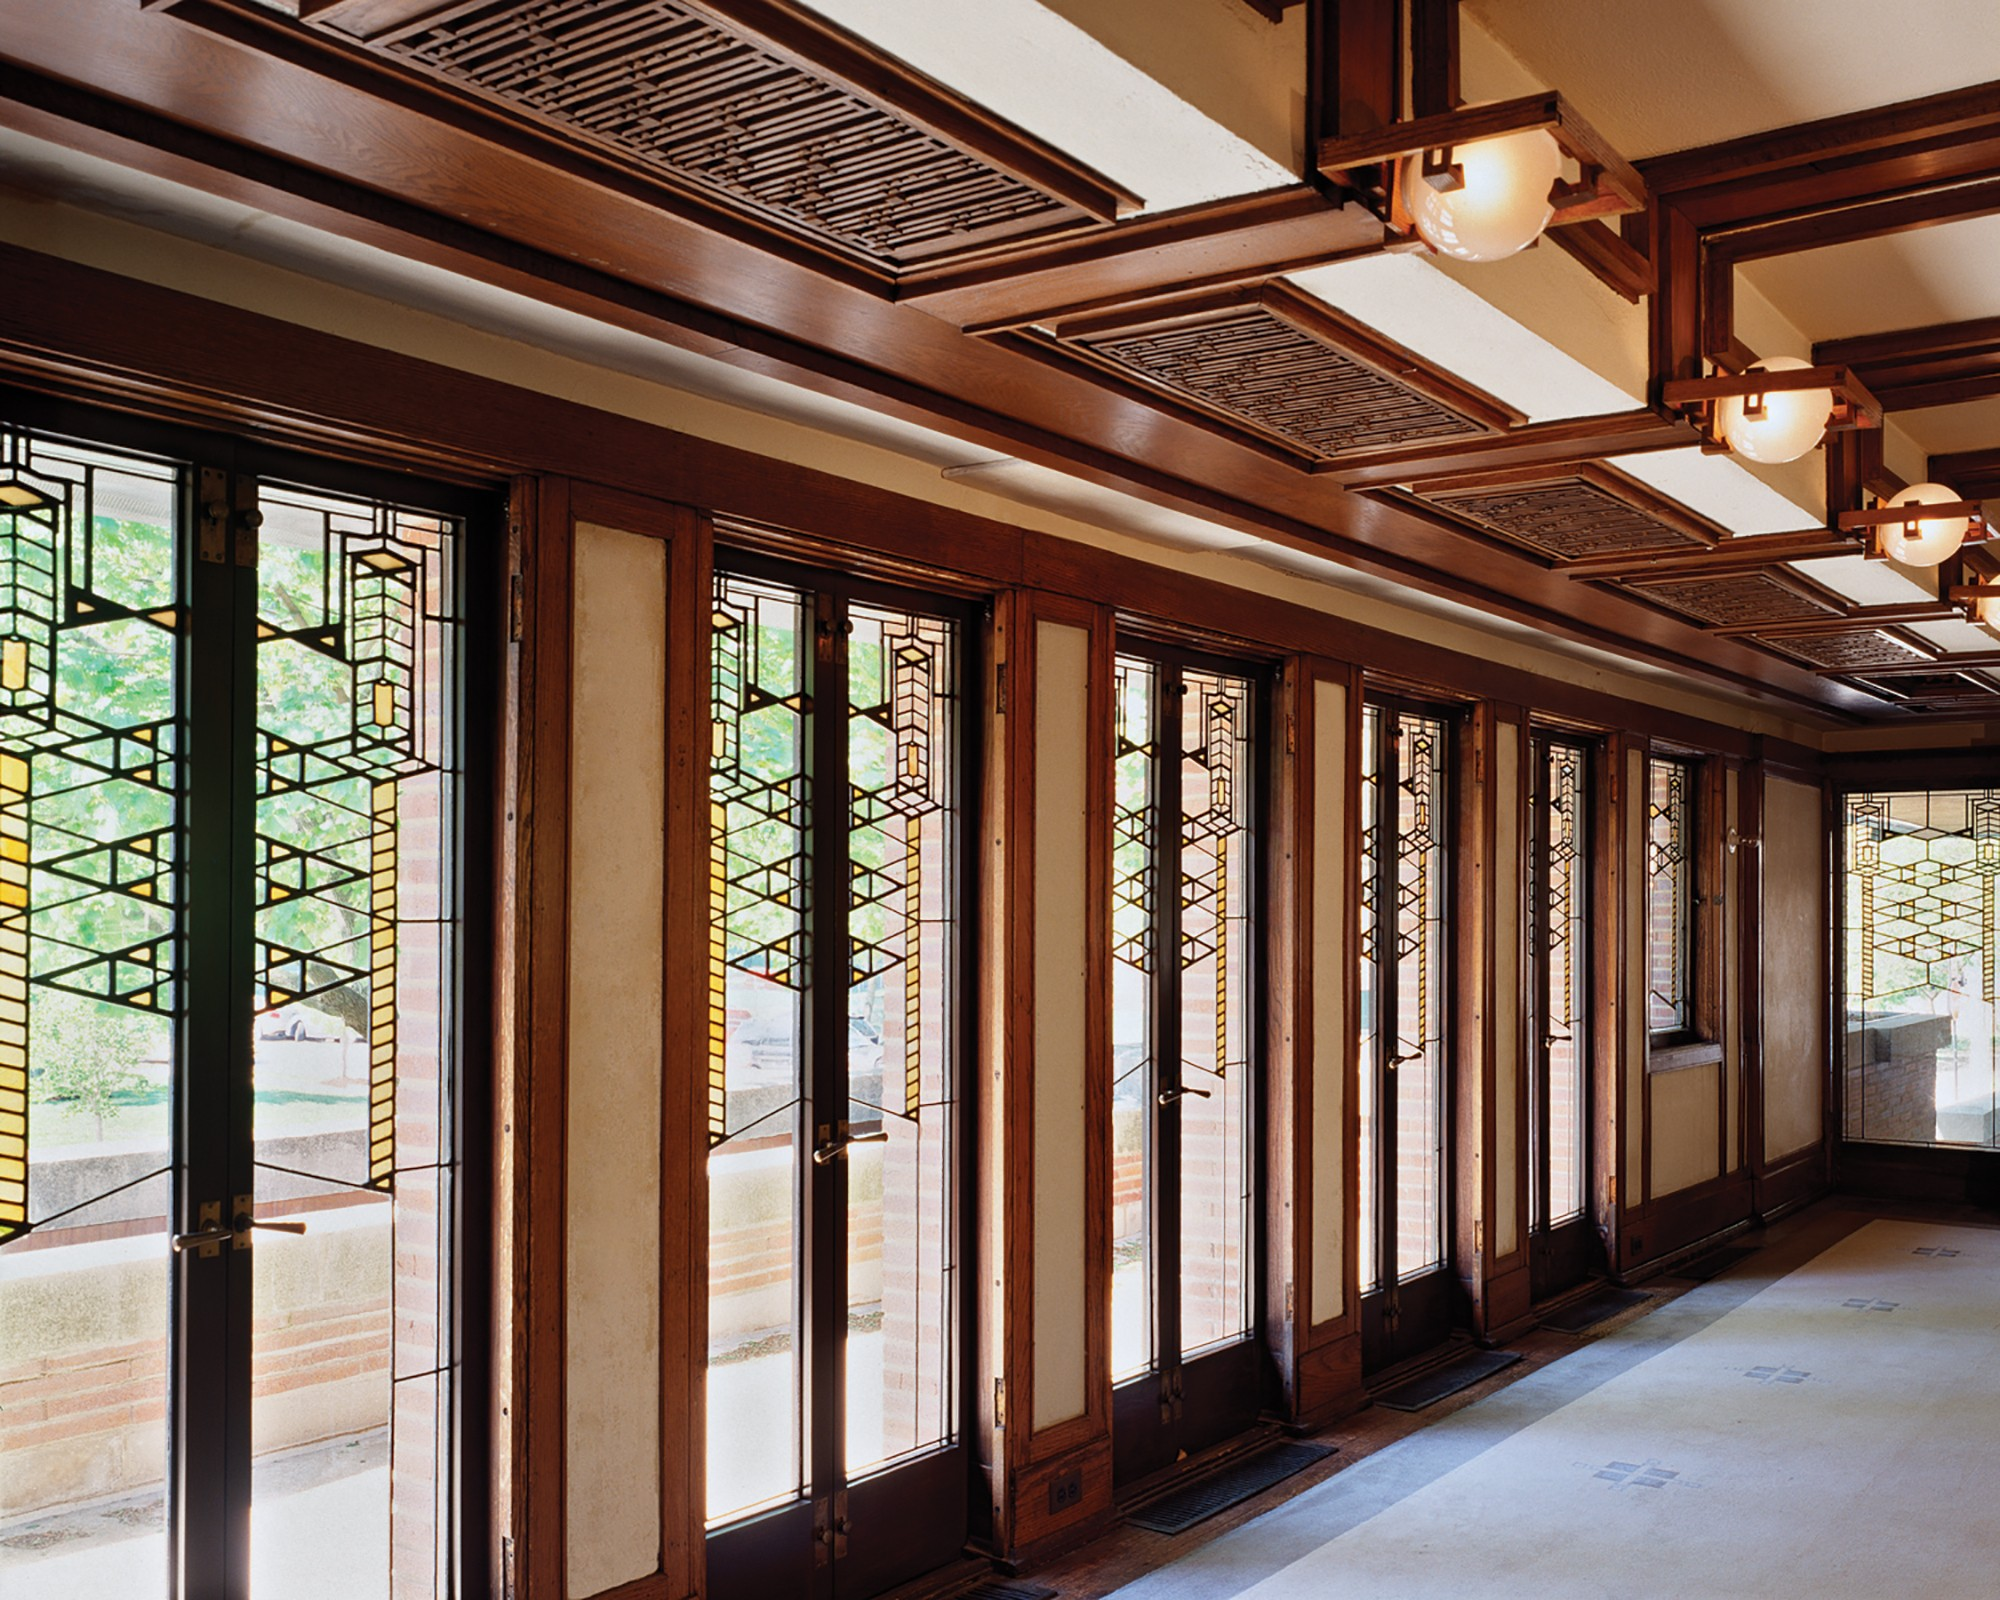 Frederick c robie house sites open house chicago Frank lloyd wright the rooms interiors and decorative arts